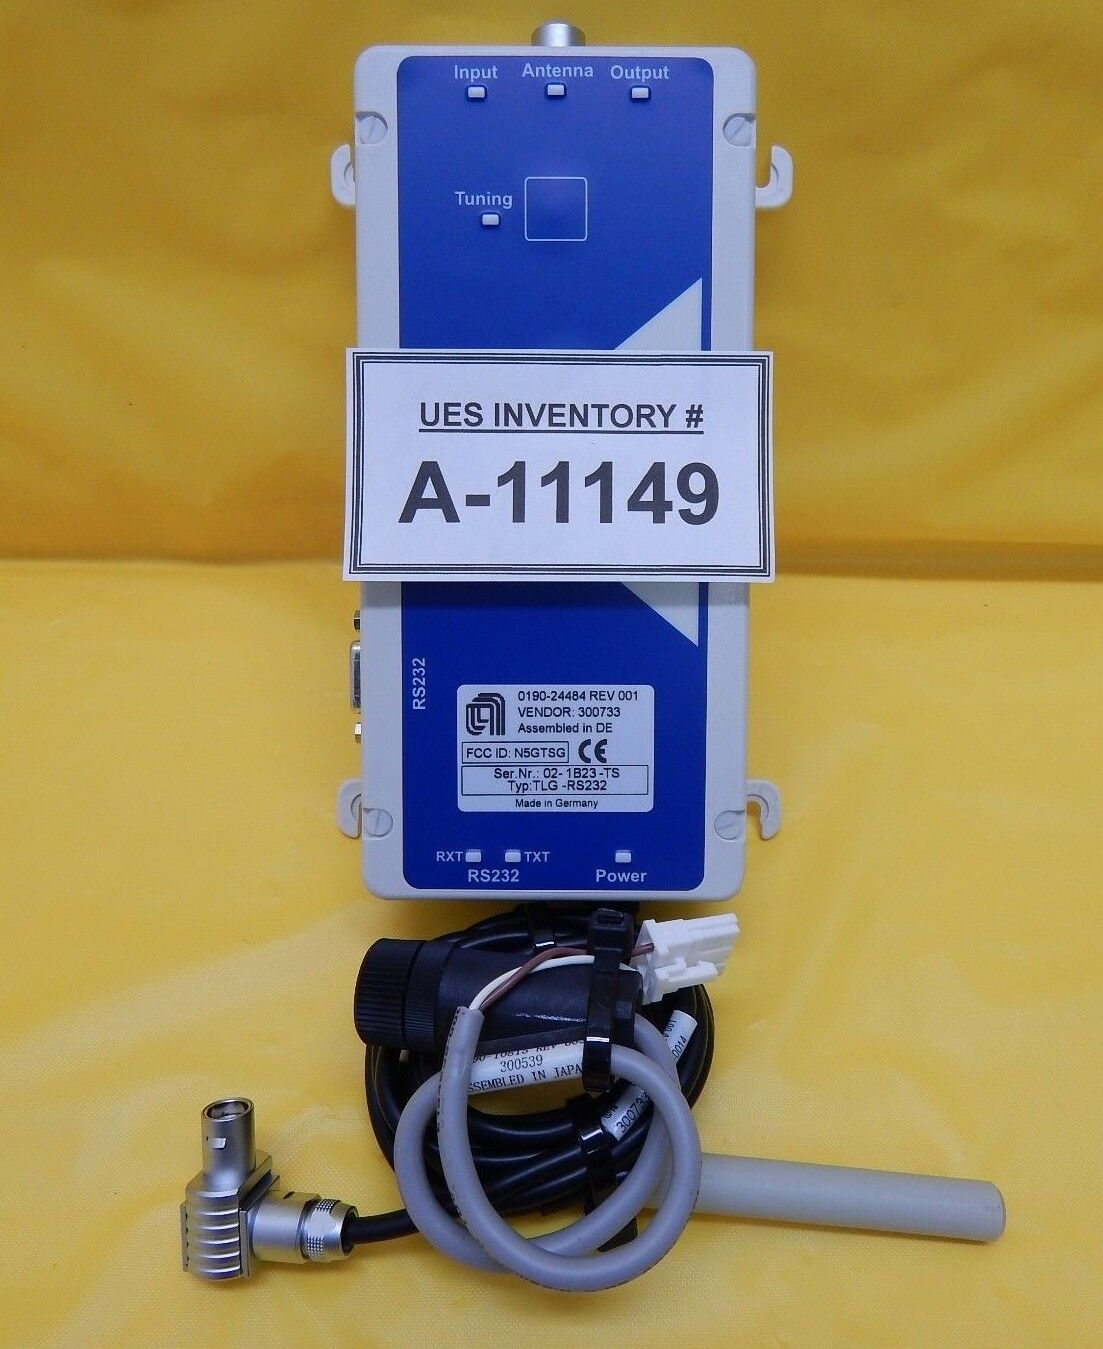 AMAT Applied Materials 0190-24484 Transponder Reader with Sensor 0190-10813 Used